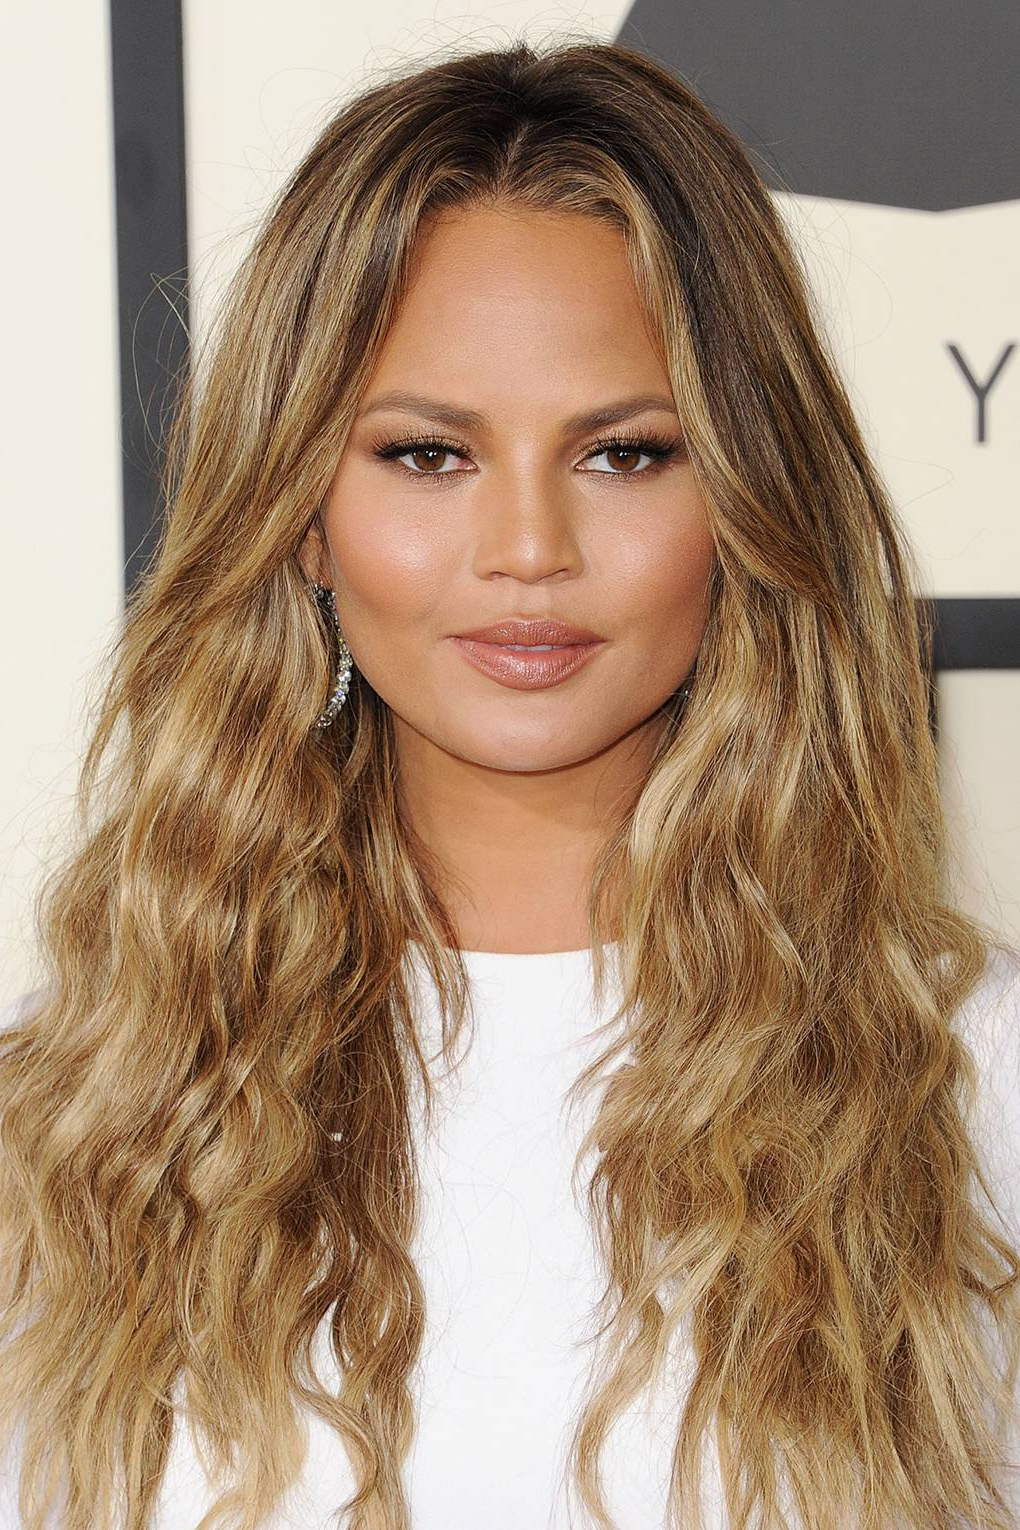 Hairstyles 2018: Hair Ideas, Cut And Colour Inspiration | Glamour Uk Pertaining To Long Disheveled Pixie Haircuts With Balayage Highlights (View 15 of 20)